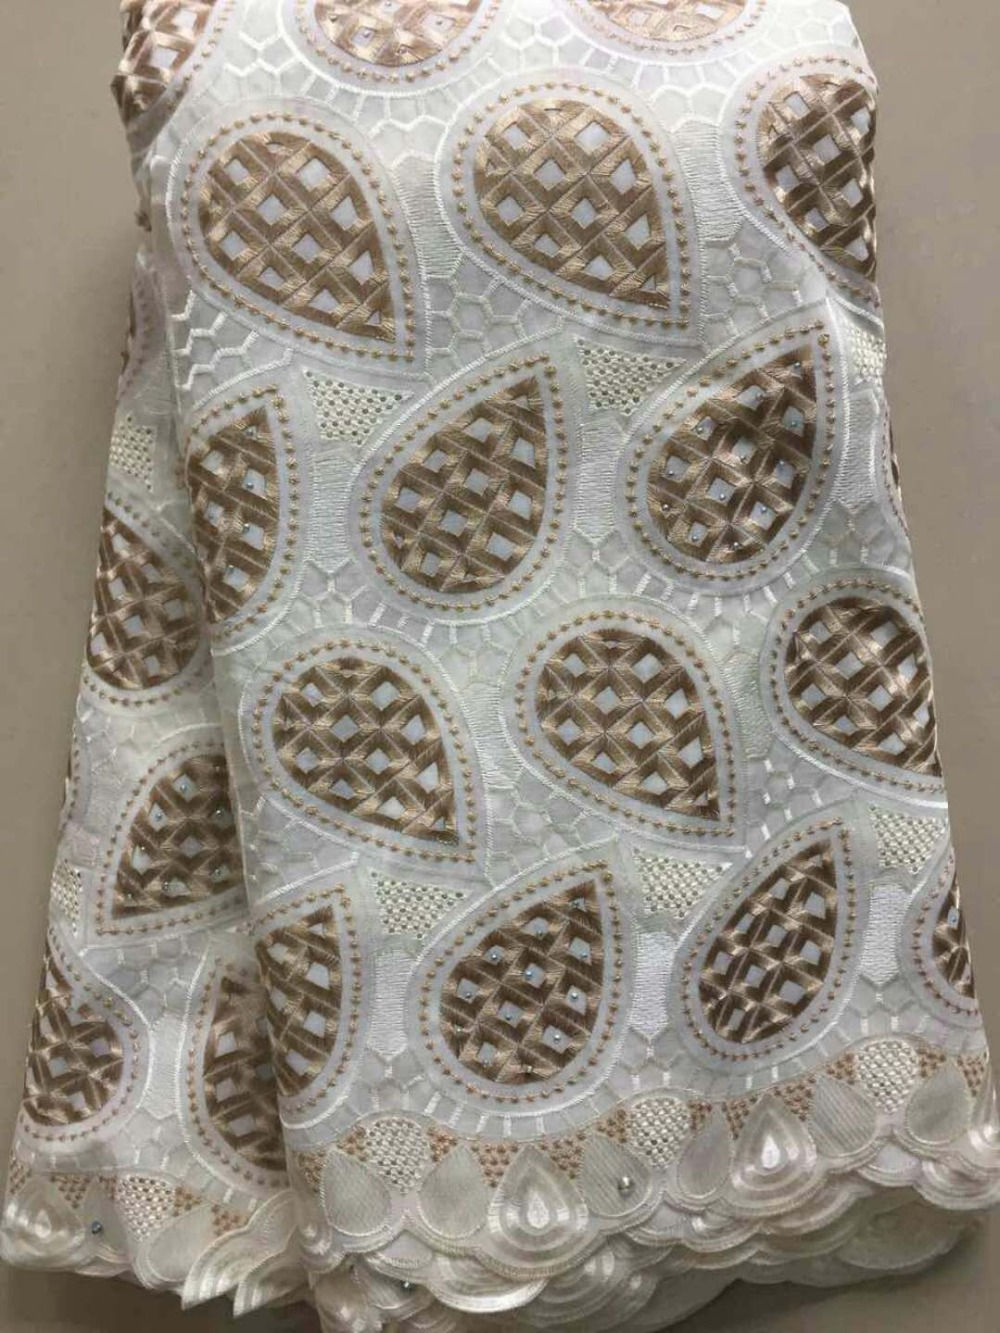 5Yards 2018 Lowest French Nigeria Laces Fabrics High Quality Tulle African Lace Fabric Wedding BE12